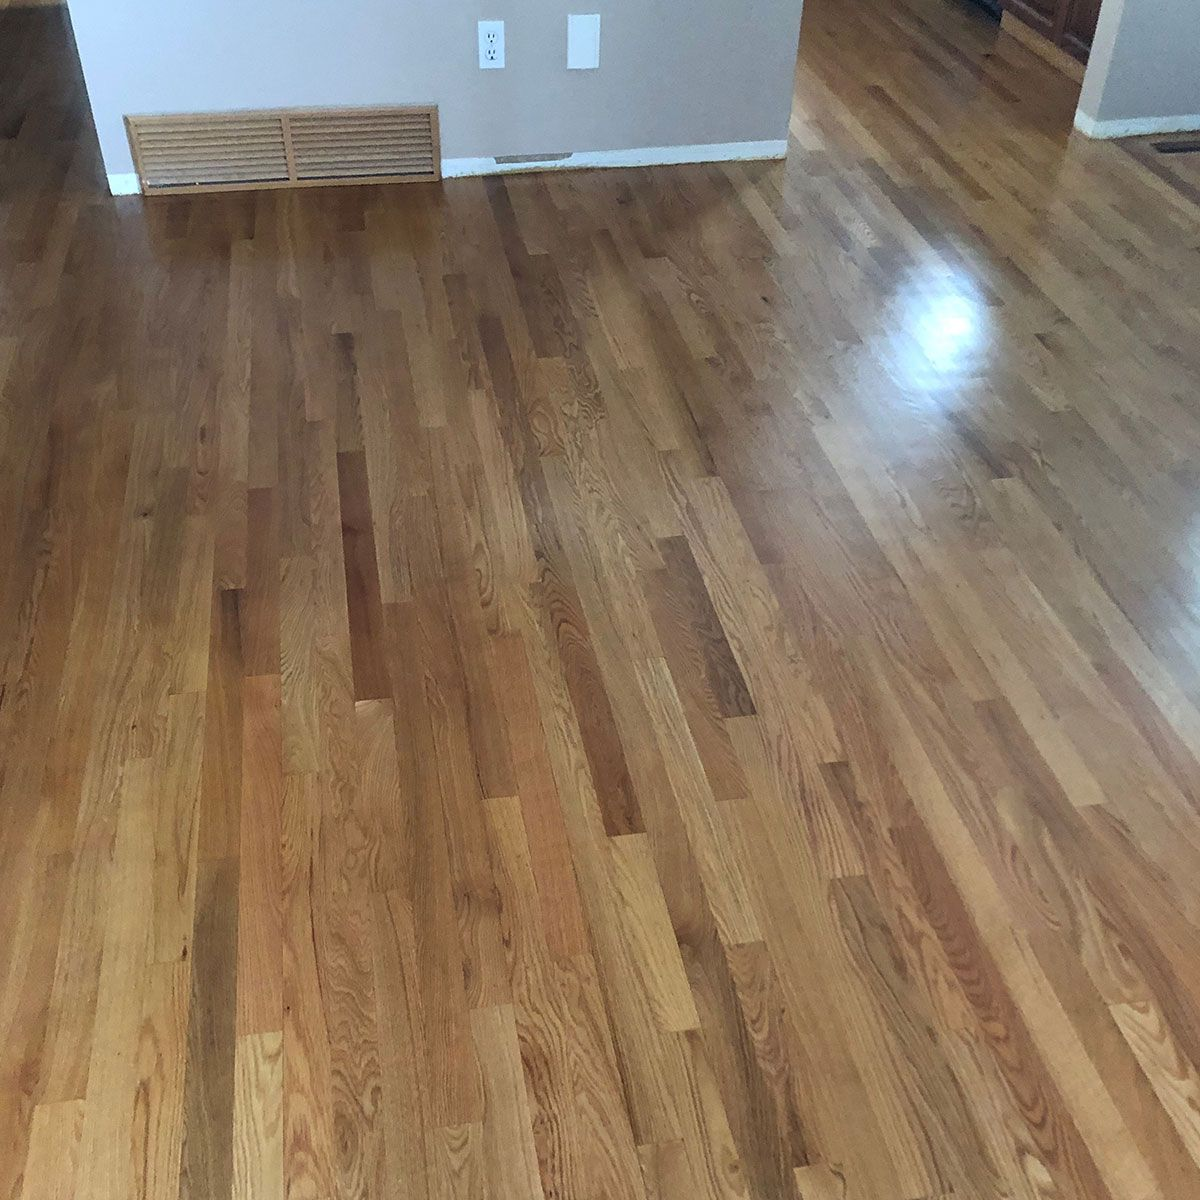 top view of a laminate flooring